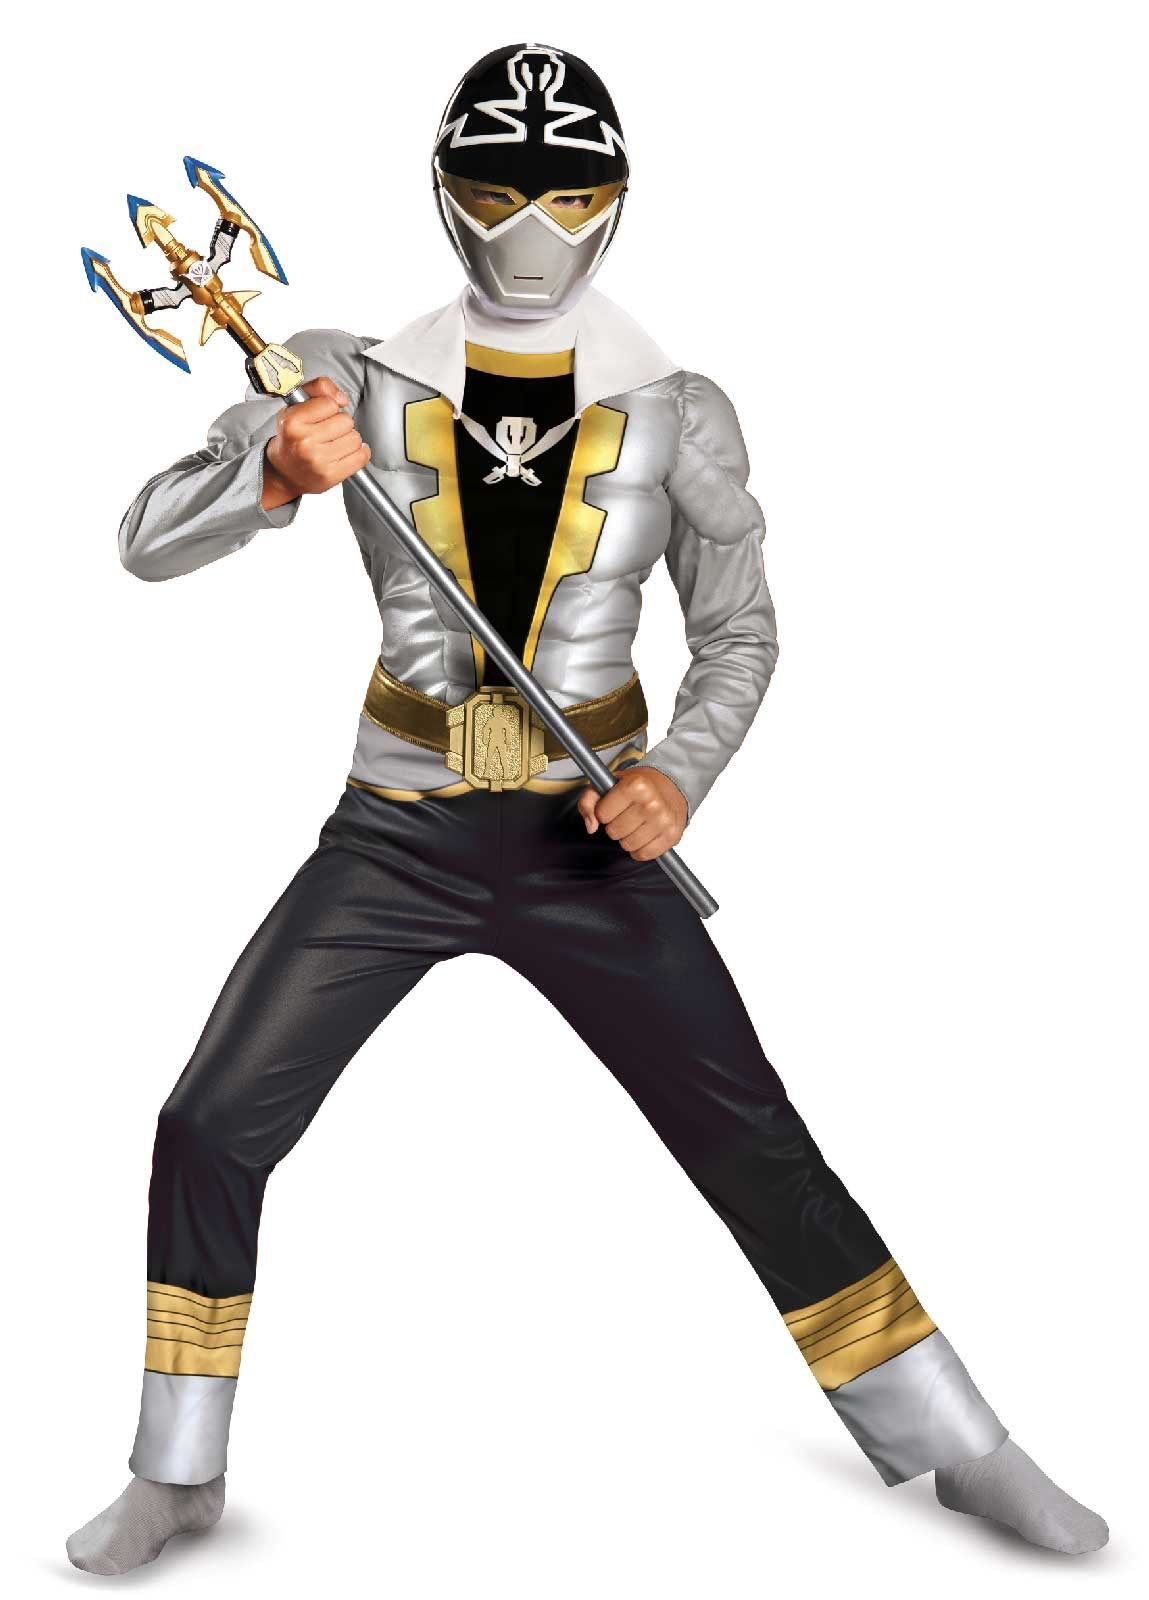 power ranger super megaforce special ranger silver muscle kids costume super megaforce ranger power rangers costume boy costumes power rangers super megaforce power rangers super megaforce